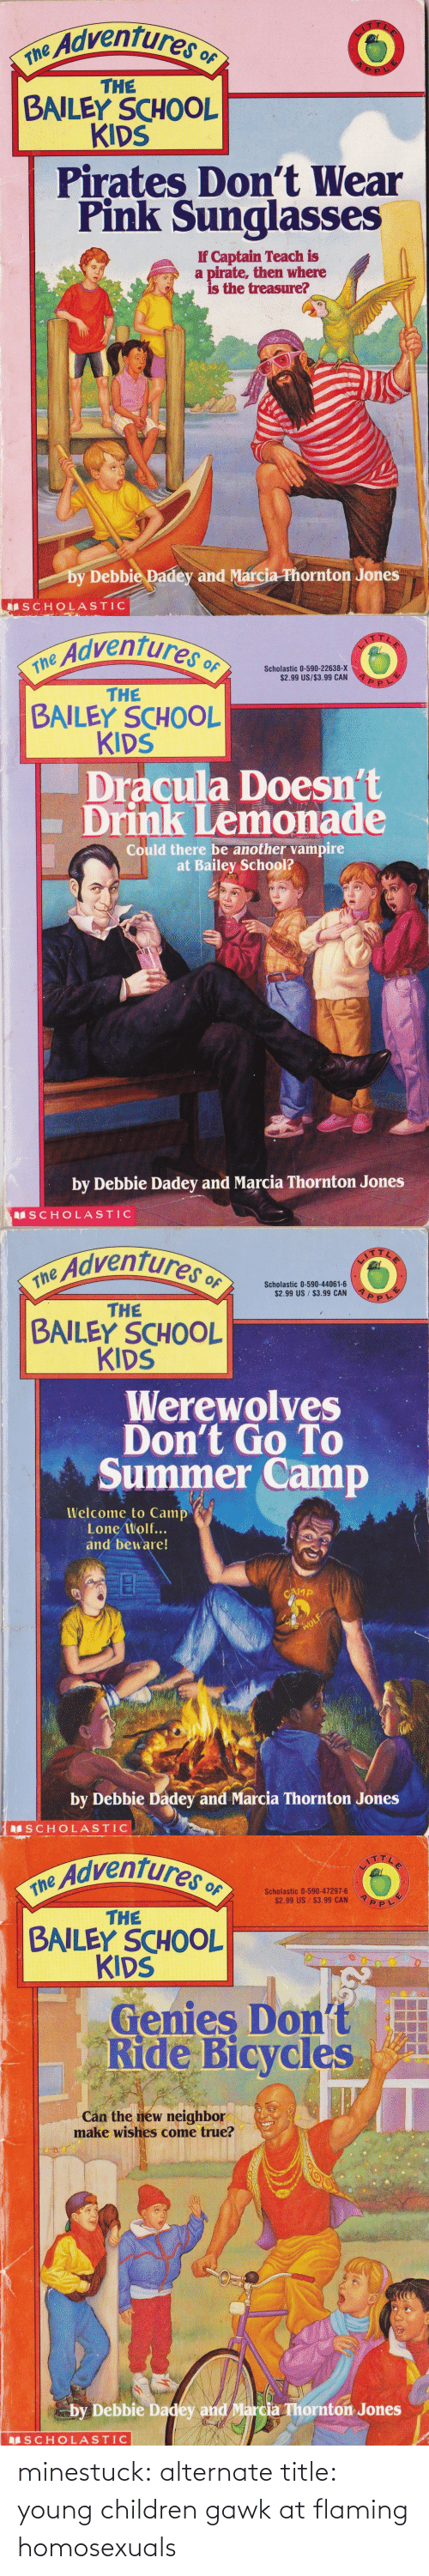 Marcia: Adventures o  ne  THE  BAILEY SCHOOL  KIDS  Pirates Don't Wear  Pink Sunglasses  If Captain Teach is  a pirate, then where  is the treasure?  by Debbie Padey and Marcia-Phornton Jones  SCHOLASTIC   Adventures  the Advent  Scholastic 0-590-22638-X  $2.99 US/$3.99 CAN  THE  BAILEY SCHOOL  KIDS  Dracula Doesn't  Drink Lemonade  Could there be another vampire  at Bailey School?  by Debbie Dadey and Marcia Thornton Jones  S CHOLASTIC   Adventures o  $2.99 US $3.99 CAN  THE  BAILEY SCHOOL  KIDS  Werewolves  Don't Go To  Summer Camp  Welcome to Camp  Lone Wolf...  and beware!  by Debbie Dadey and Marcia Thornton Jones  S CHOLASTIC   e Adventures  Scholastic 0-590-47297-6  $2.99 US $3.99 CAN  THE  BAILEY SCHOOL  KIDS  Genies Dont  Ride Bicycles  Cán the new neighbor  make wishes come true?  by Debbie Dadey and Marcia Thornton Jones  SCHOLASTIC minestuck:  alternate title: young children gawk at flaming homosexuals